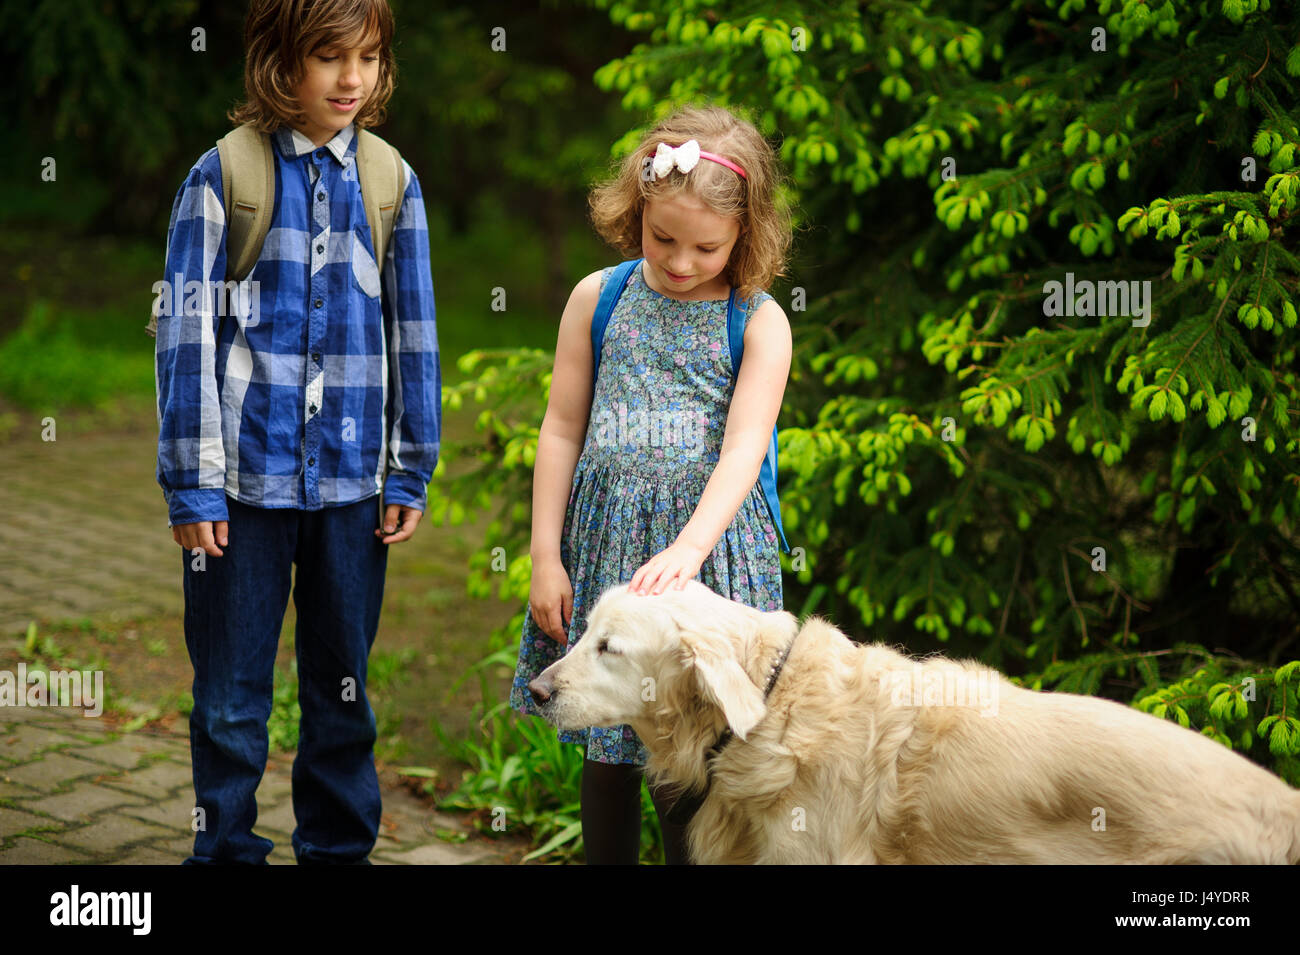 Little schoolchildren met on the way to school a large dog. The good-natured retriever drew the children's attention. - Stock Image